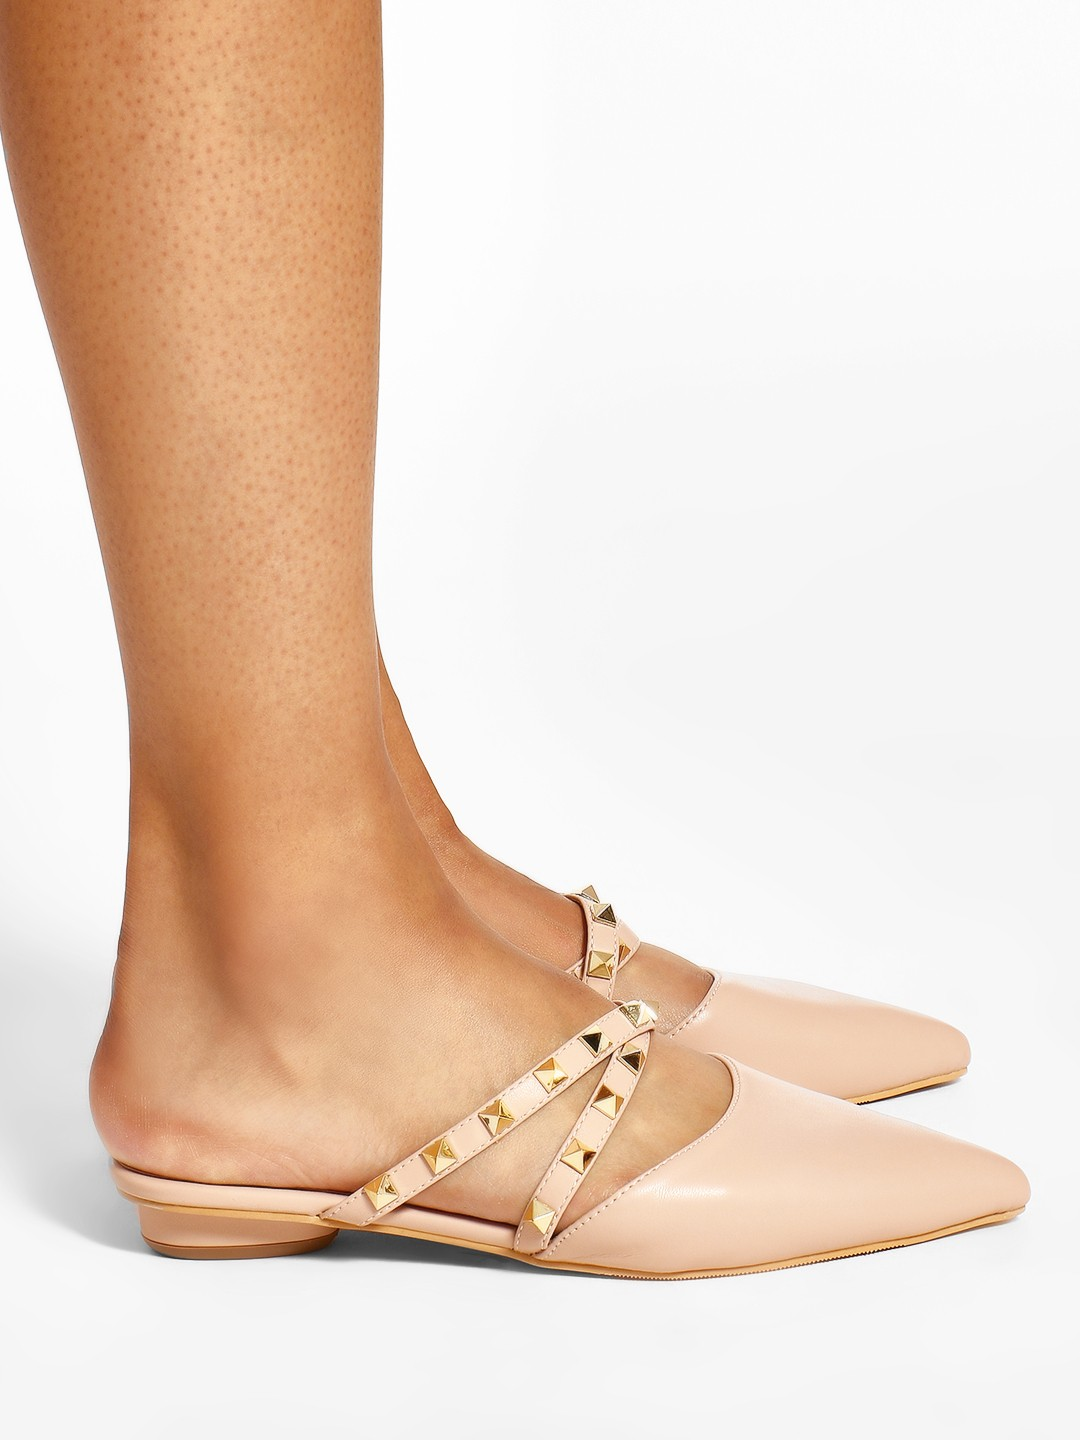 Sole Story Pink Studded Strap Heeled Mules 1